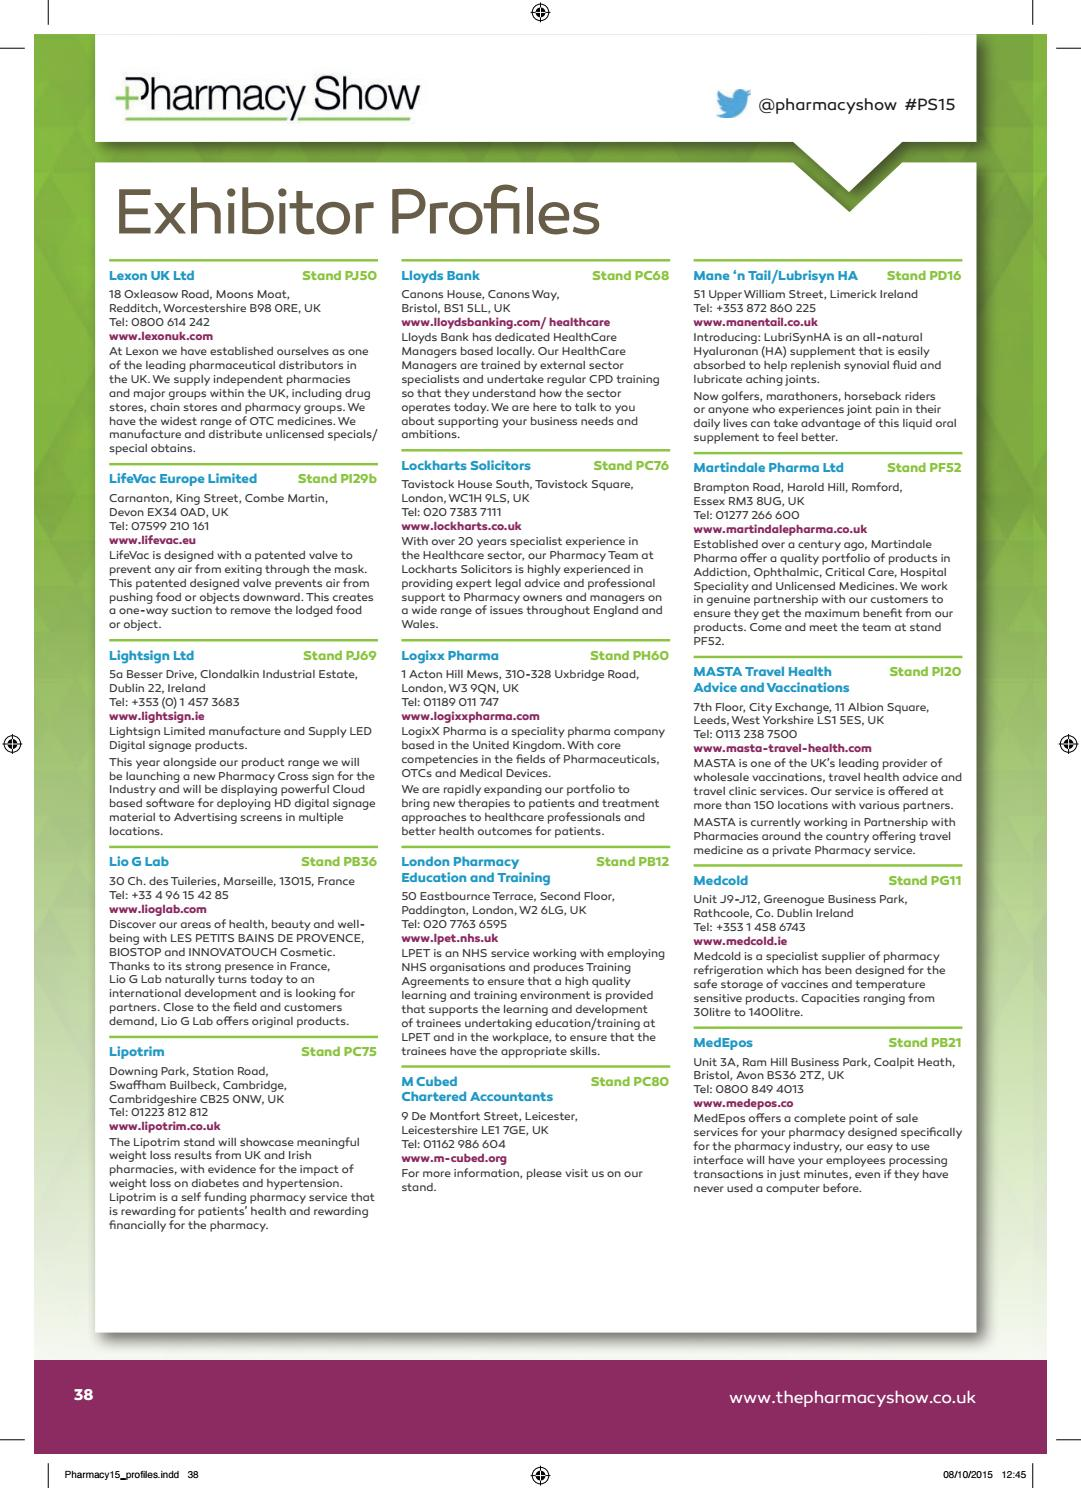 Pharmacy Show 2015 Show Guide by CloserStill Media - issuu